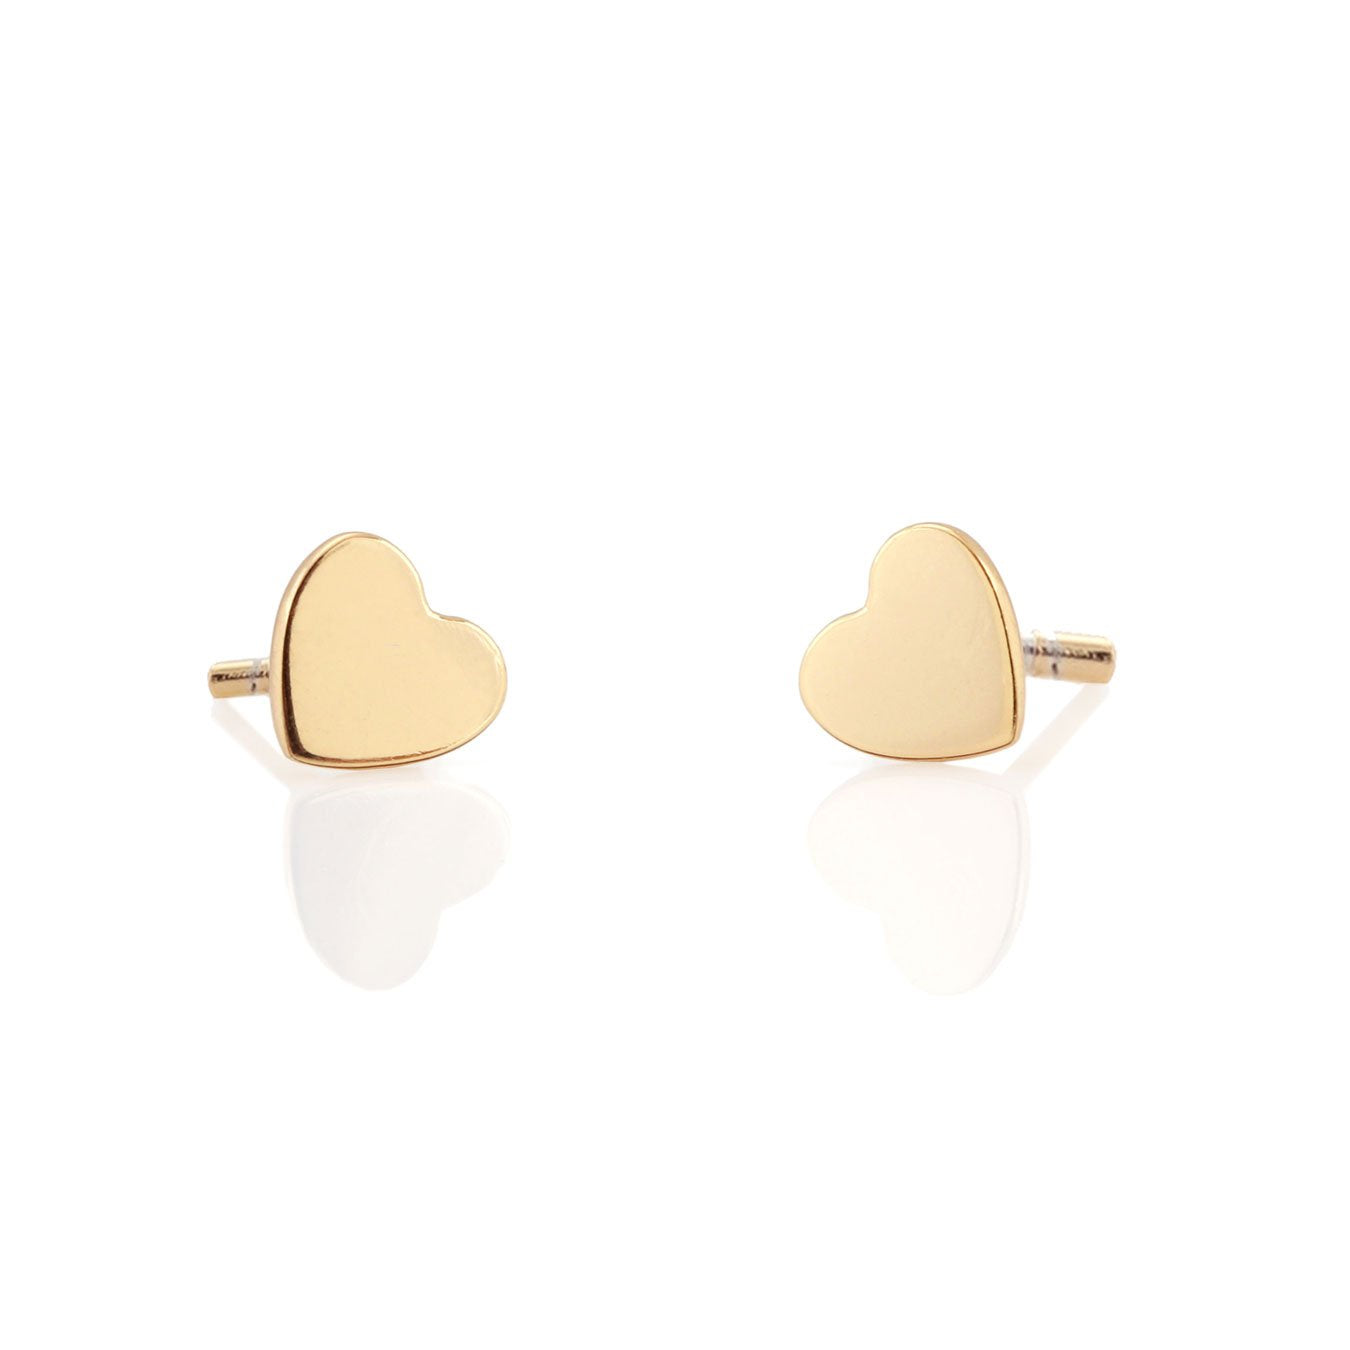 KRIS NATIONS - HEART STUD EARRINGS IN 18K GOLD